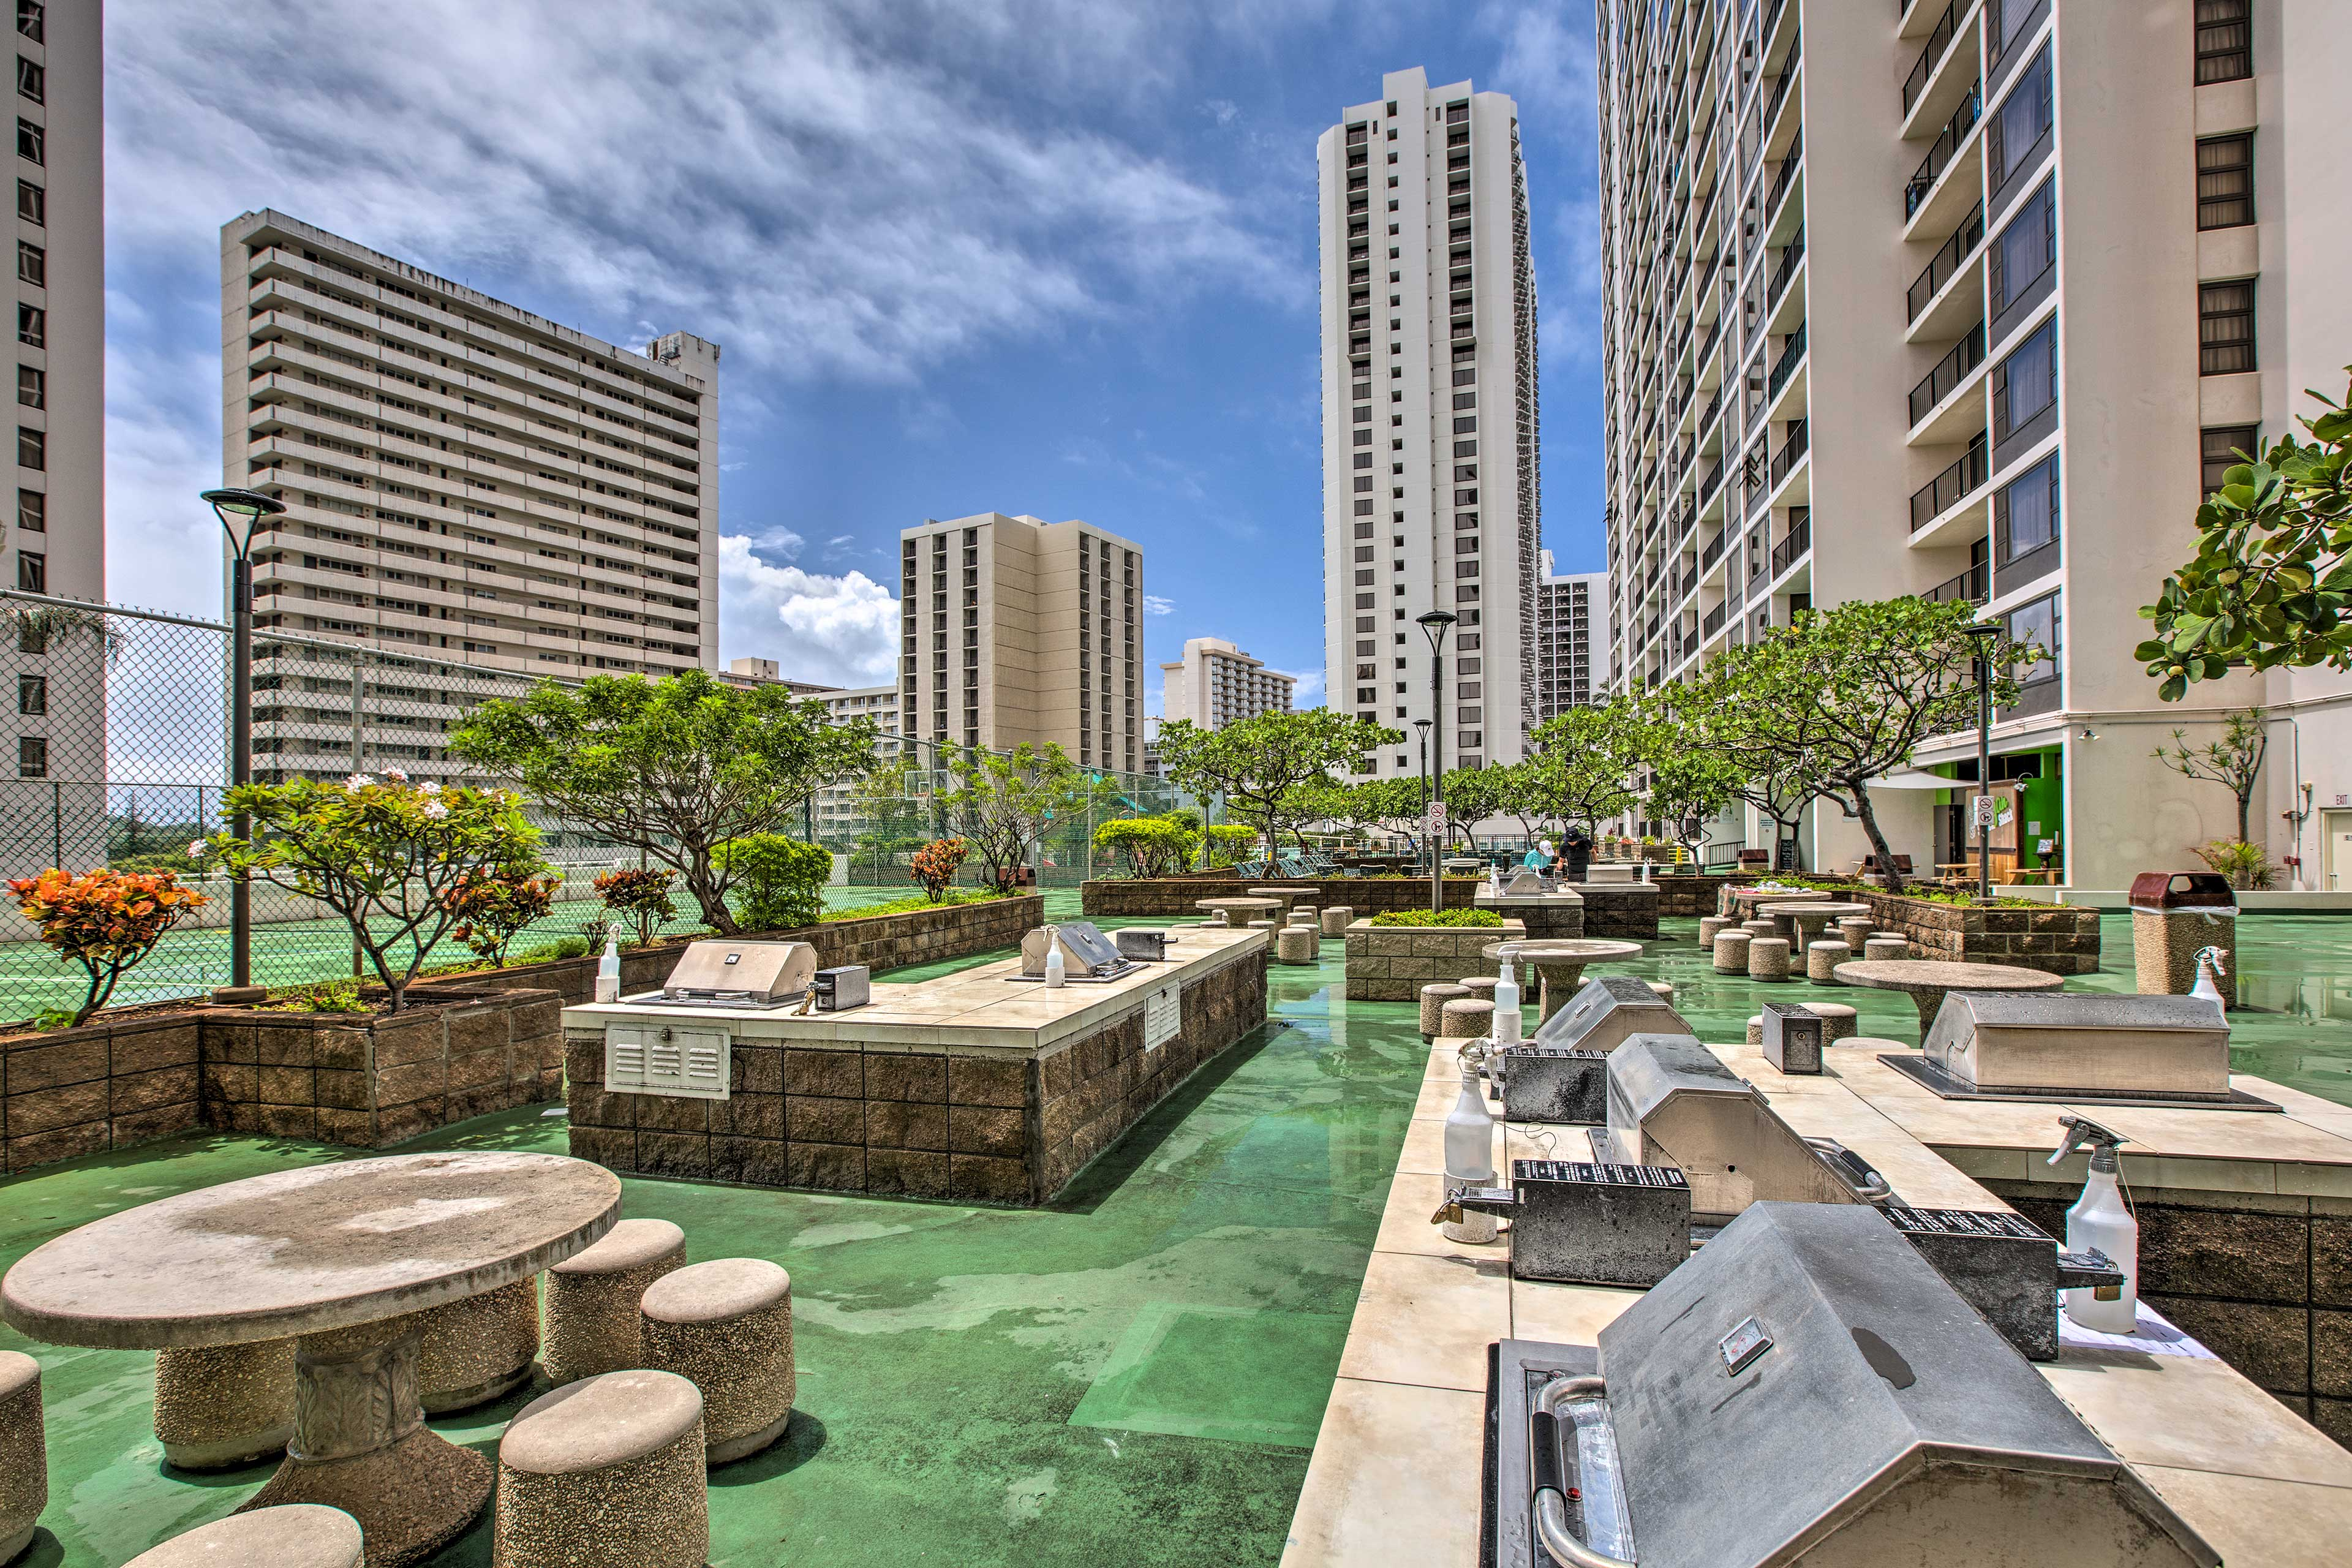 Utilize the picnic tables and grill area for an afternoon luau.